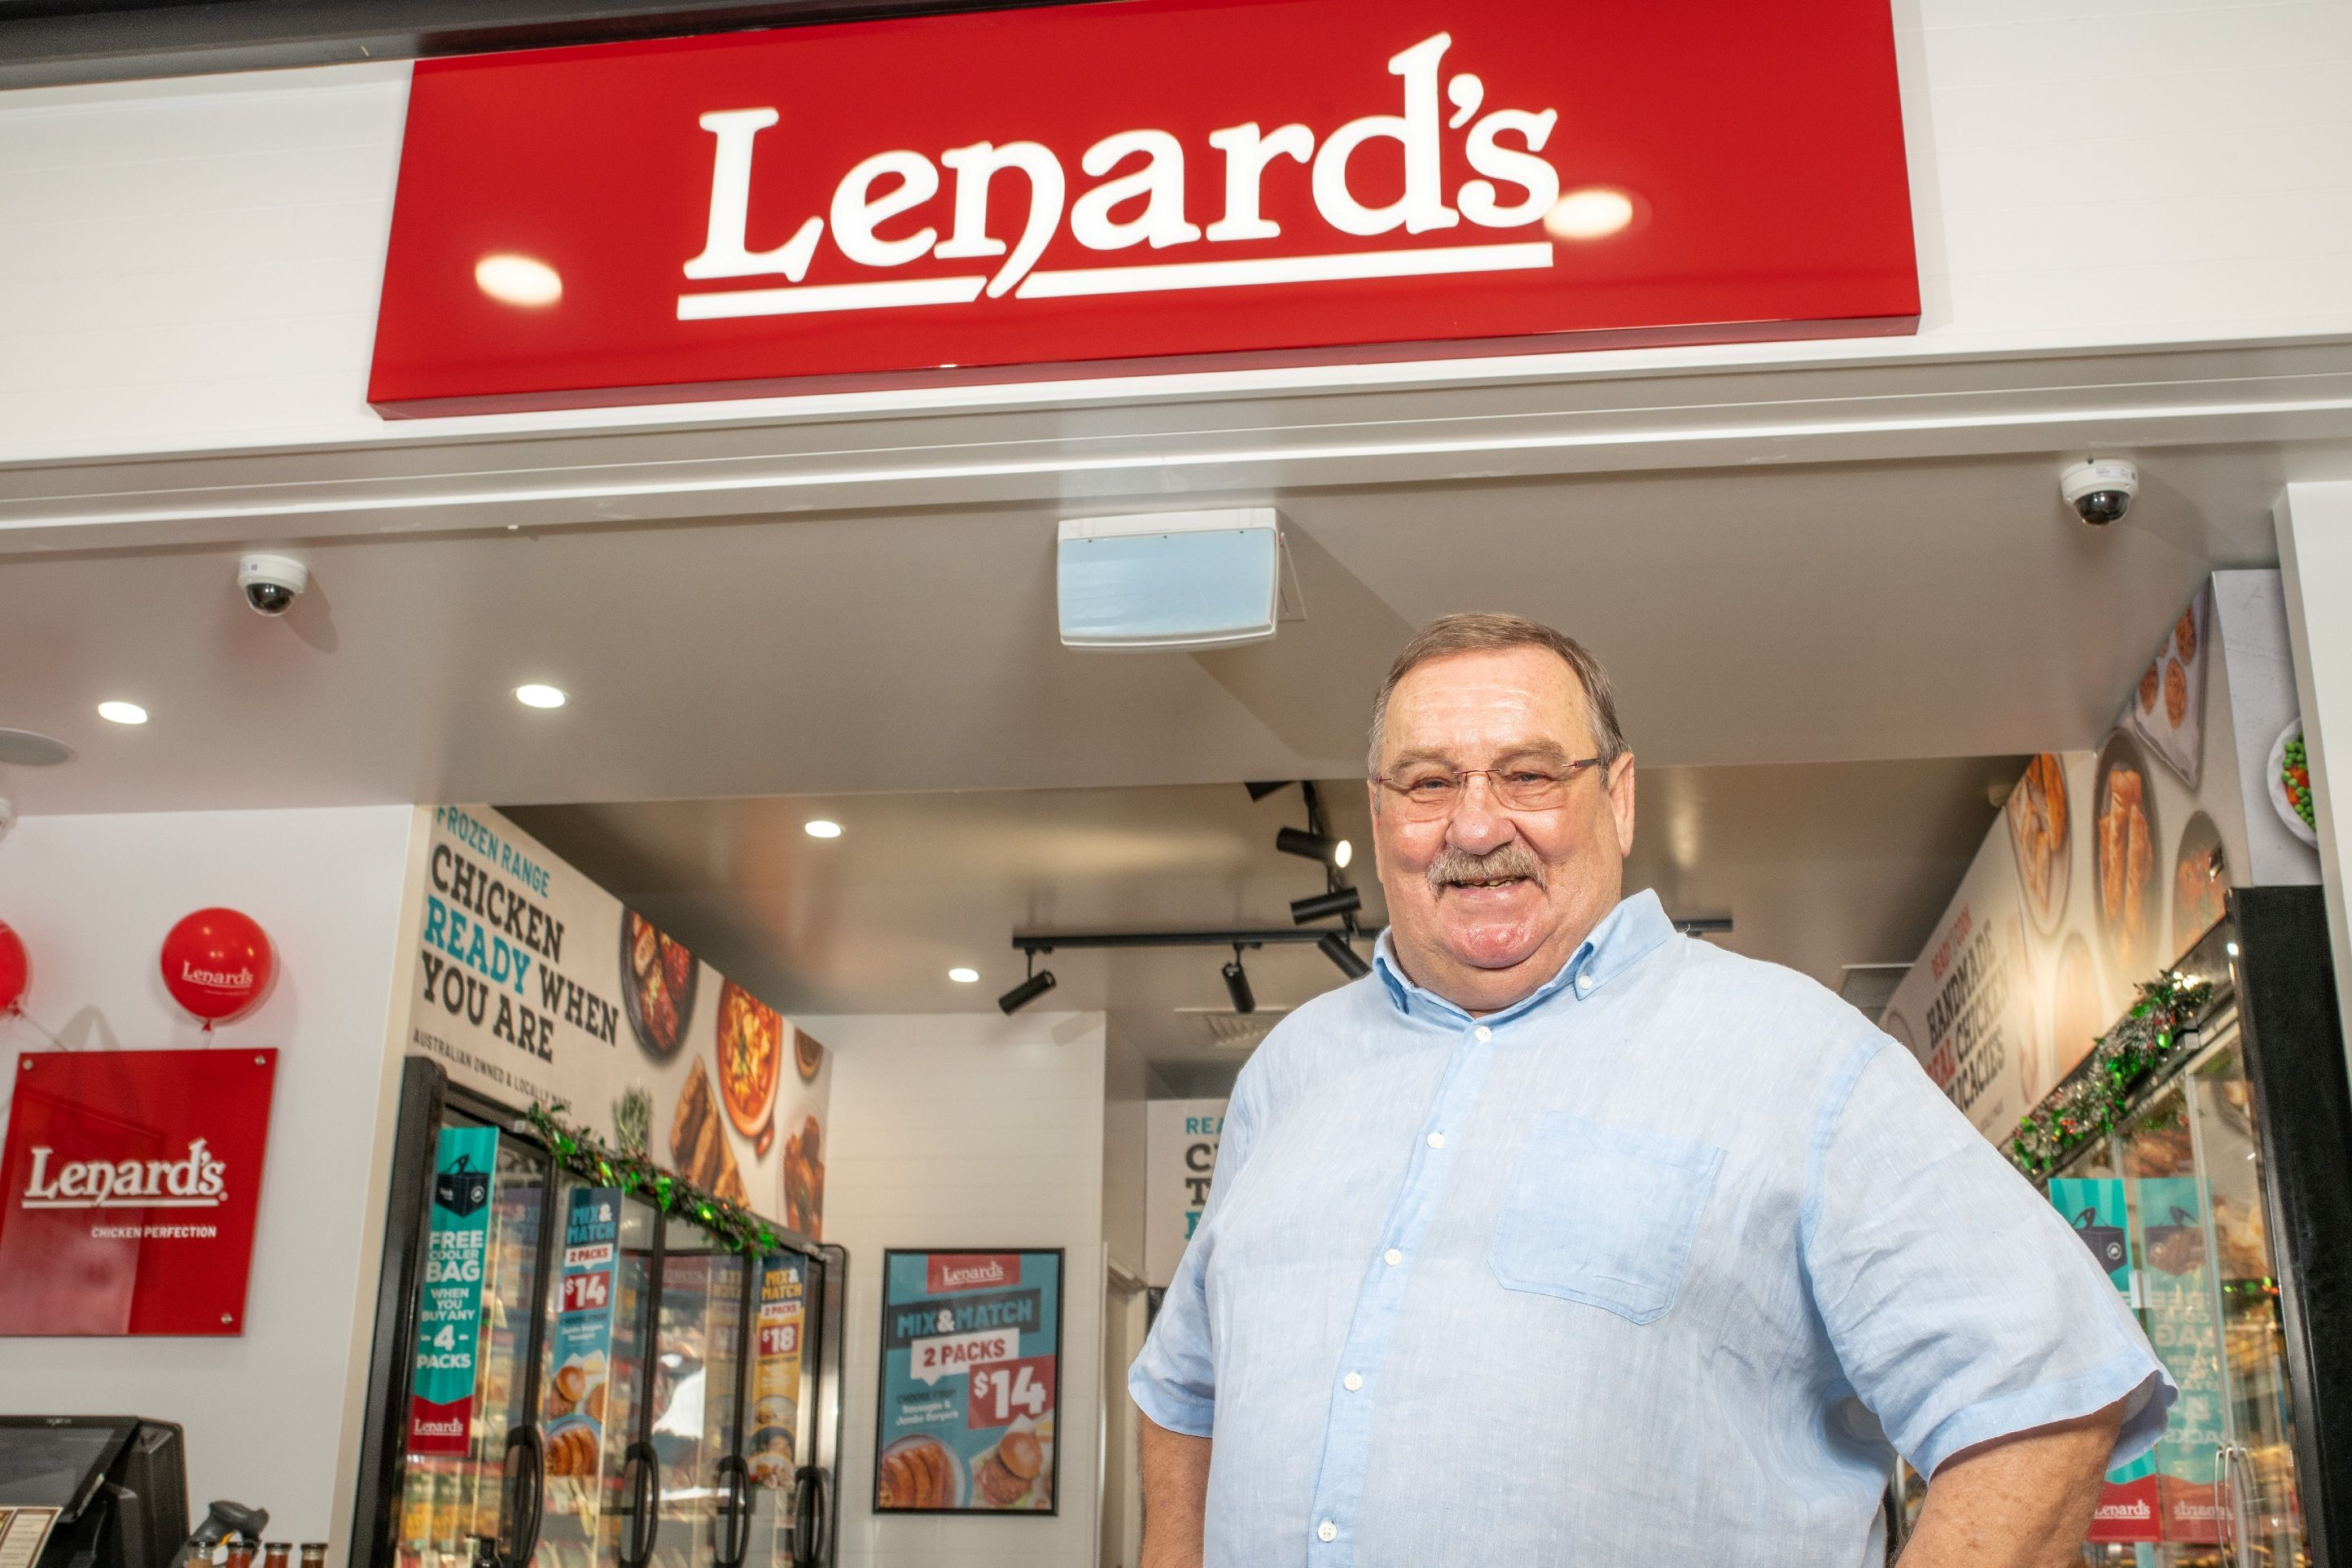 Lenard Poulter unveils a new concept store | Inside Franchise Business Executive